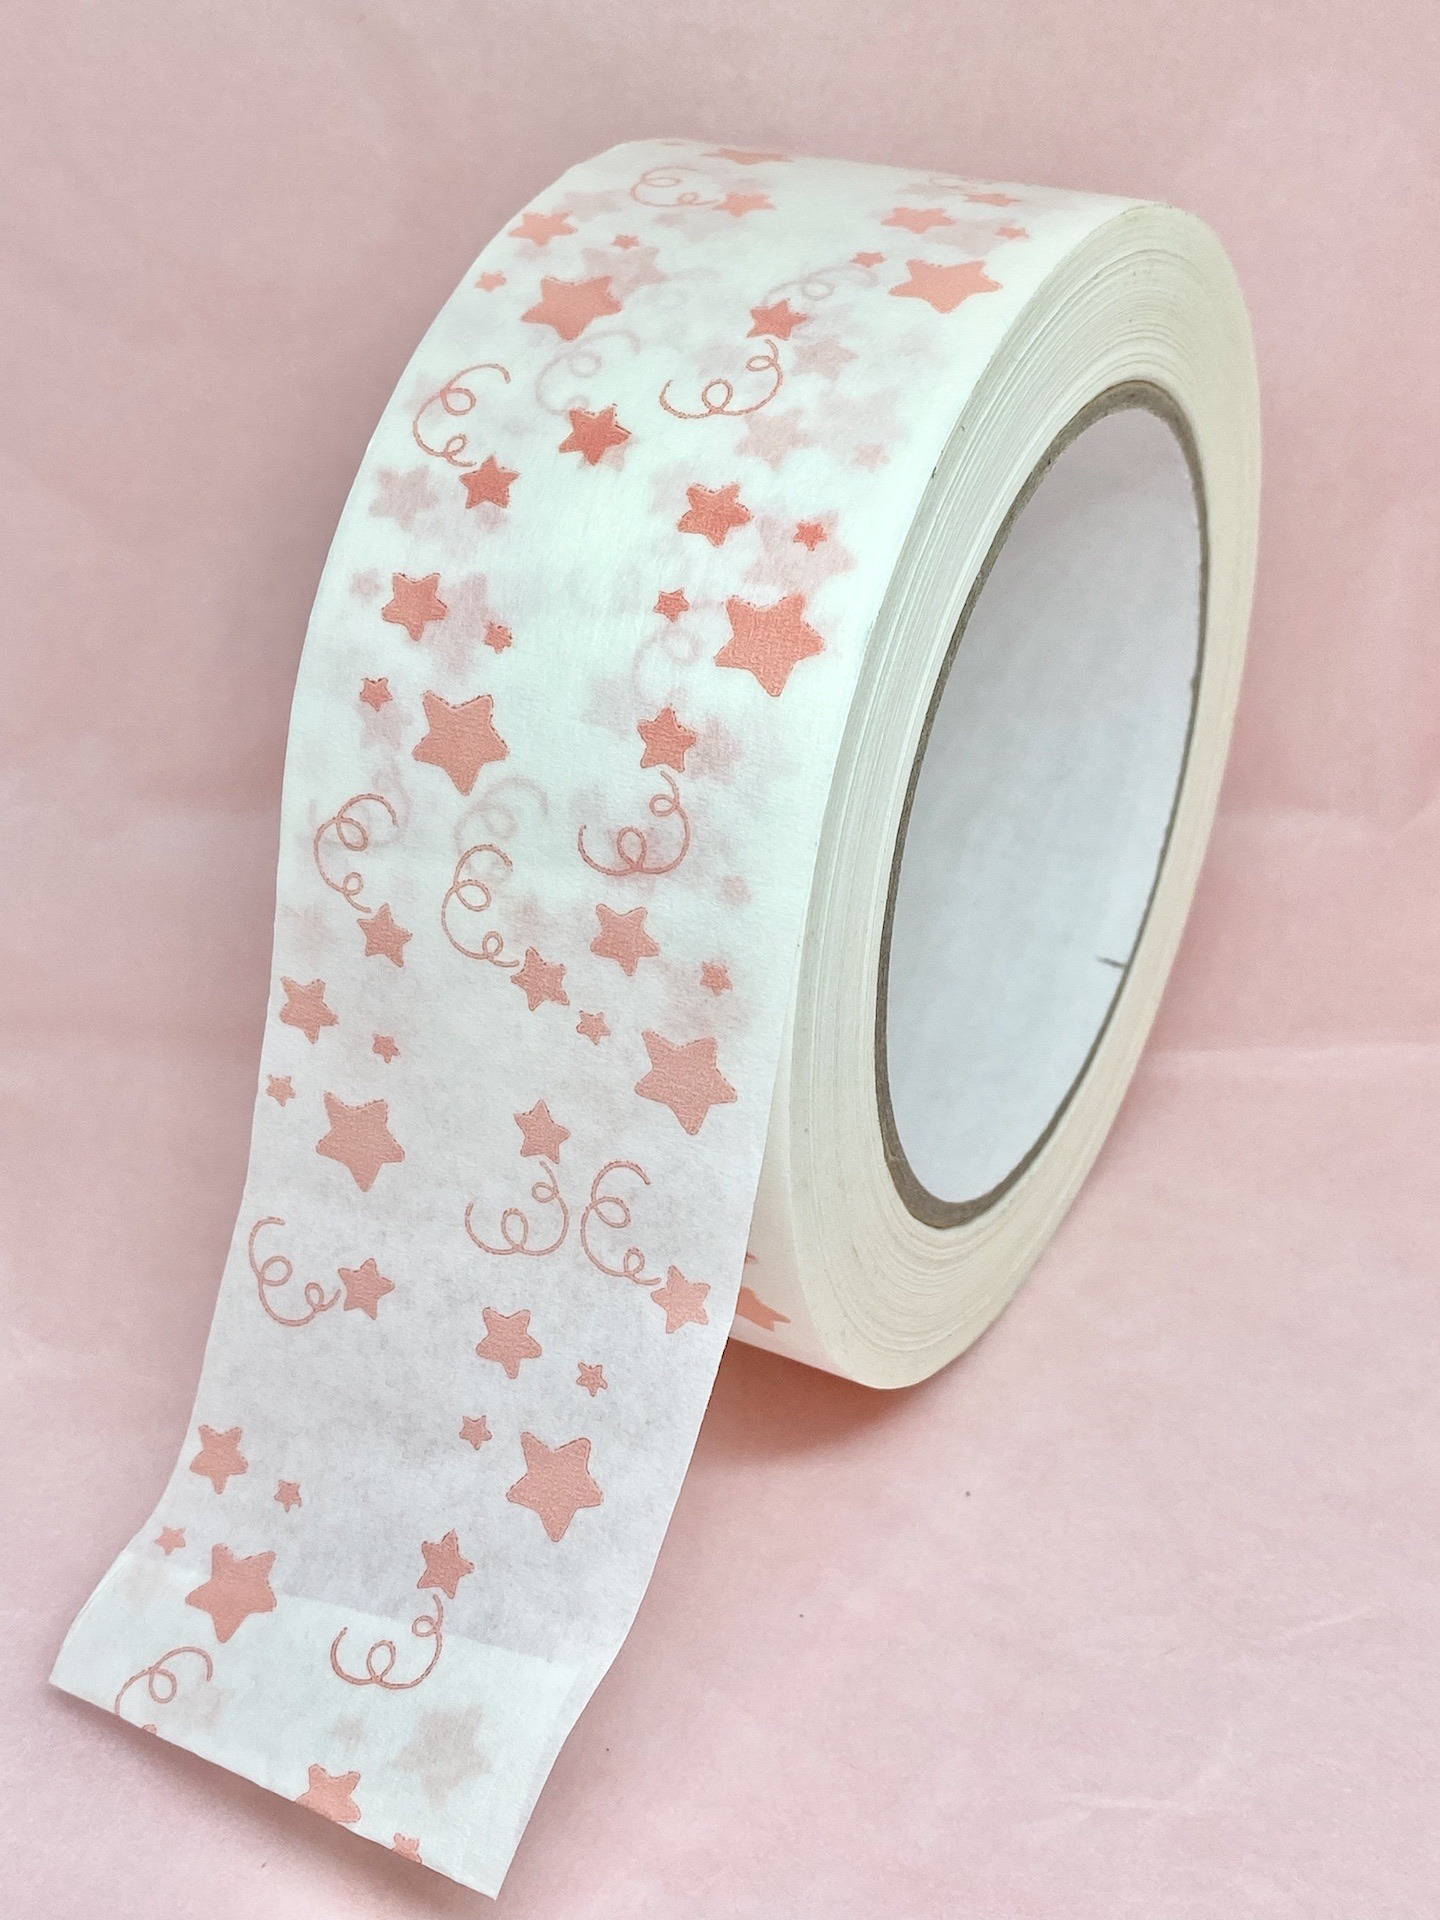 Eco friendly paper tape, paper packing tape, kraft paper tape, recyclable paper tape, cute packing tape, printed packing tape, Kind Shop 2